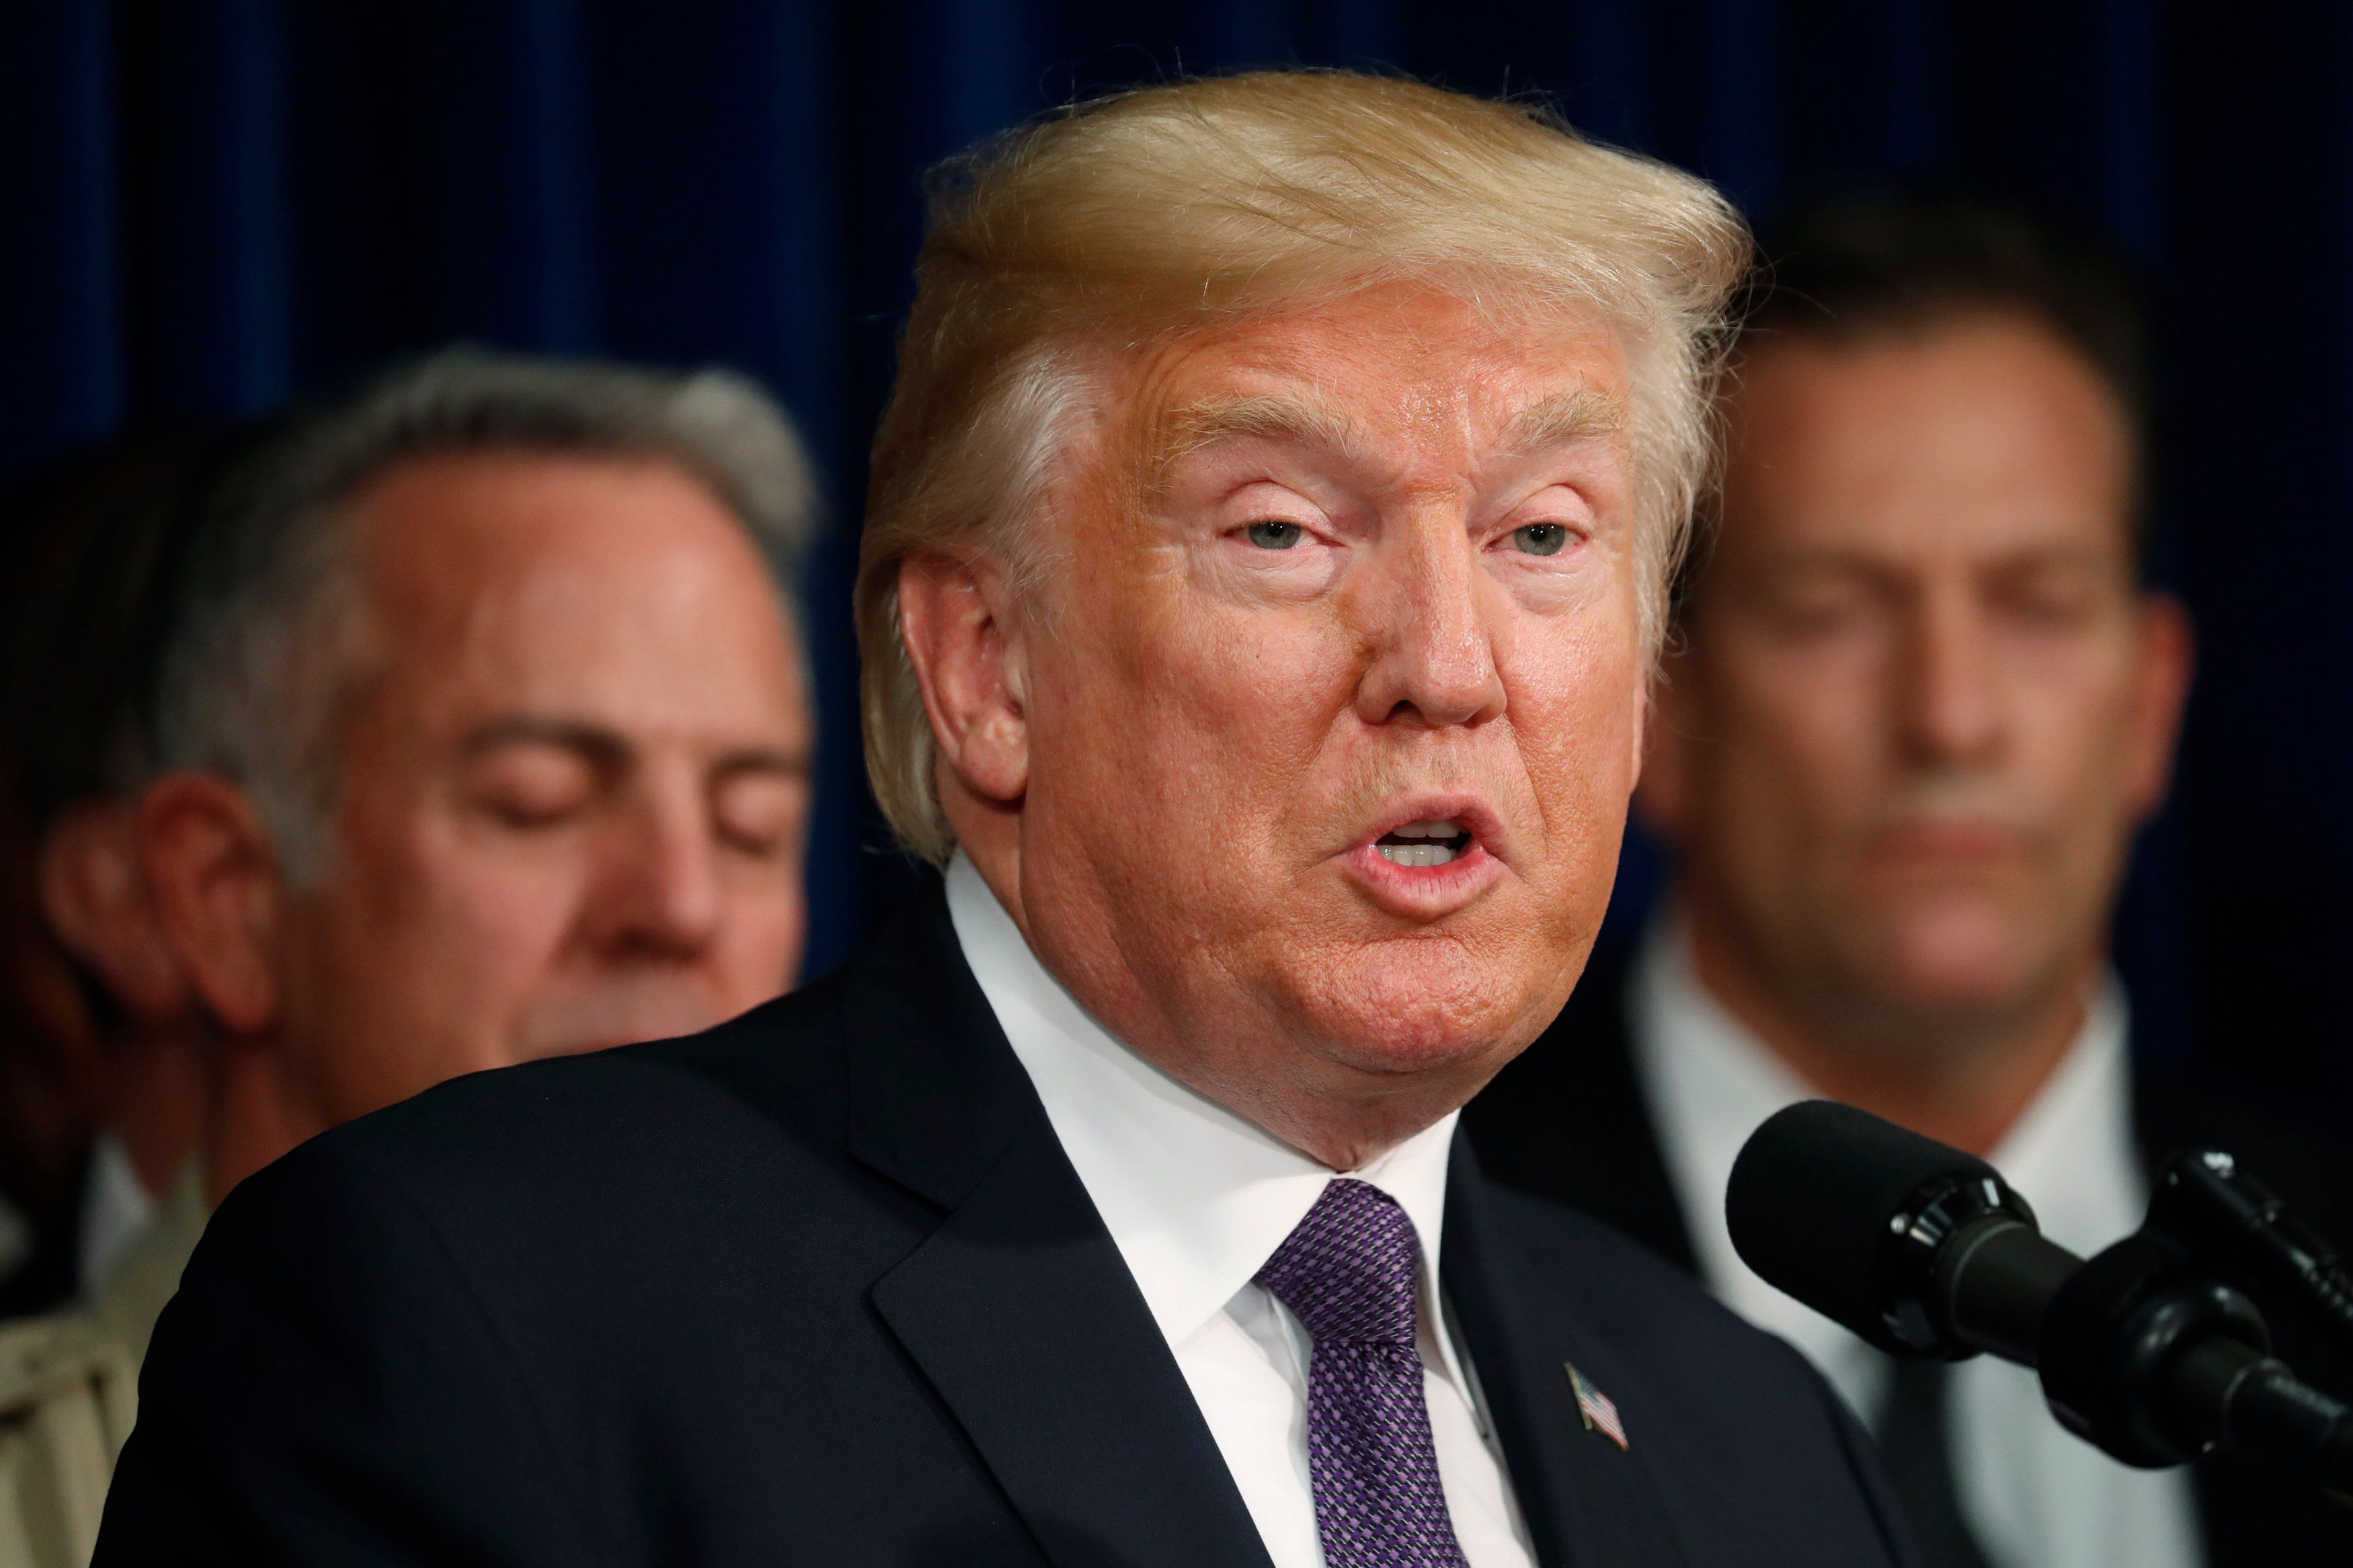 U.S. President Donald Trump speaks after meeting with police at the Las Vegas Metropolitan Police Department in the wake of the mass shooting in Las Vegas, Nevada, U.S., October 4, 2017. REUTERS/Kevin Lamarque